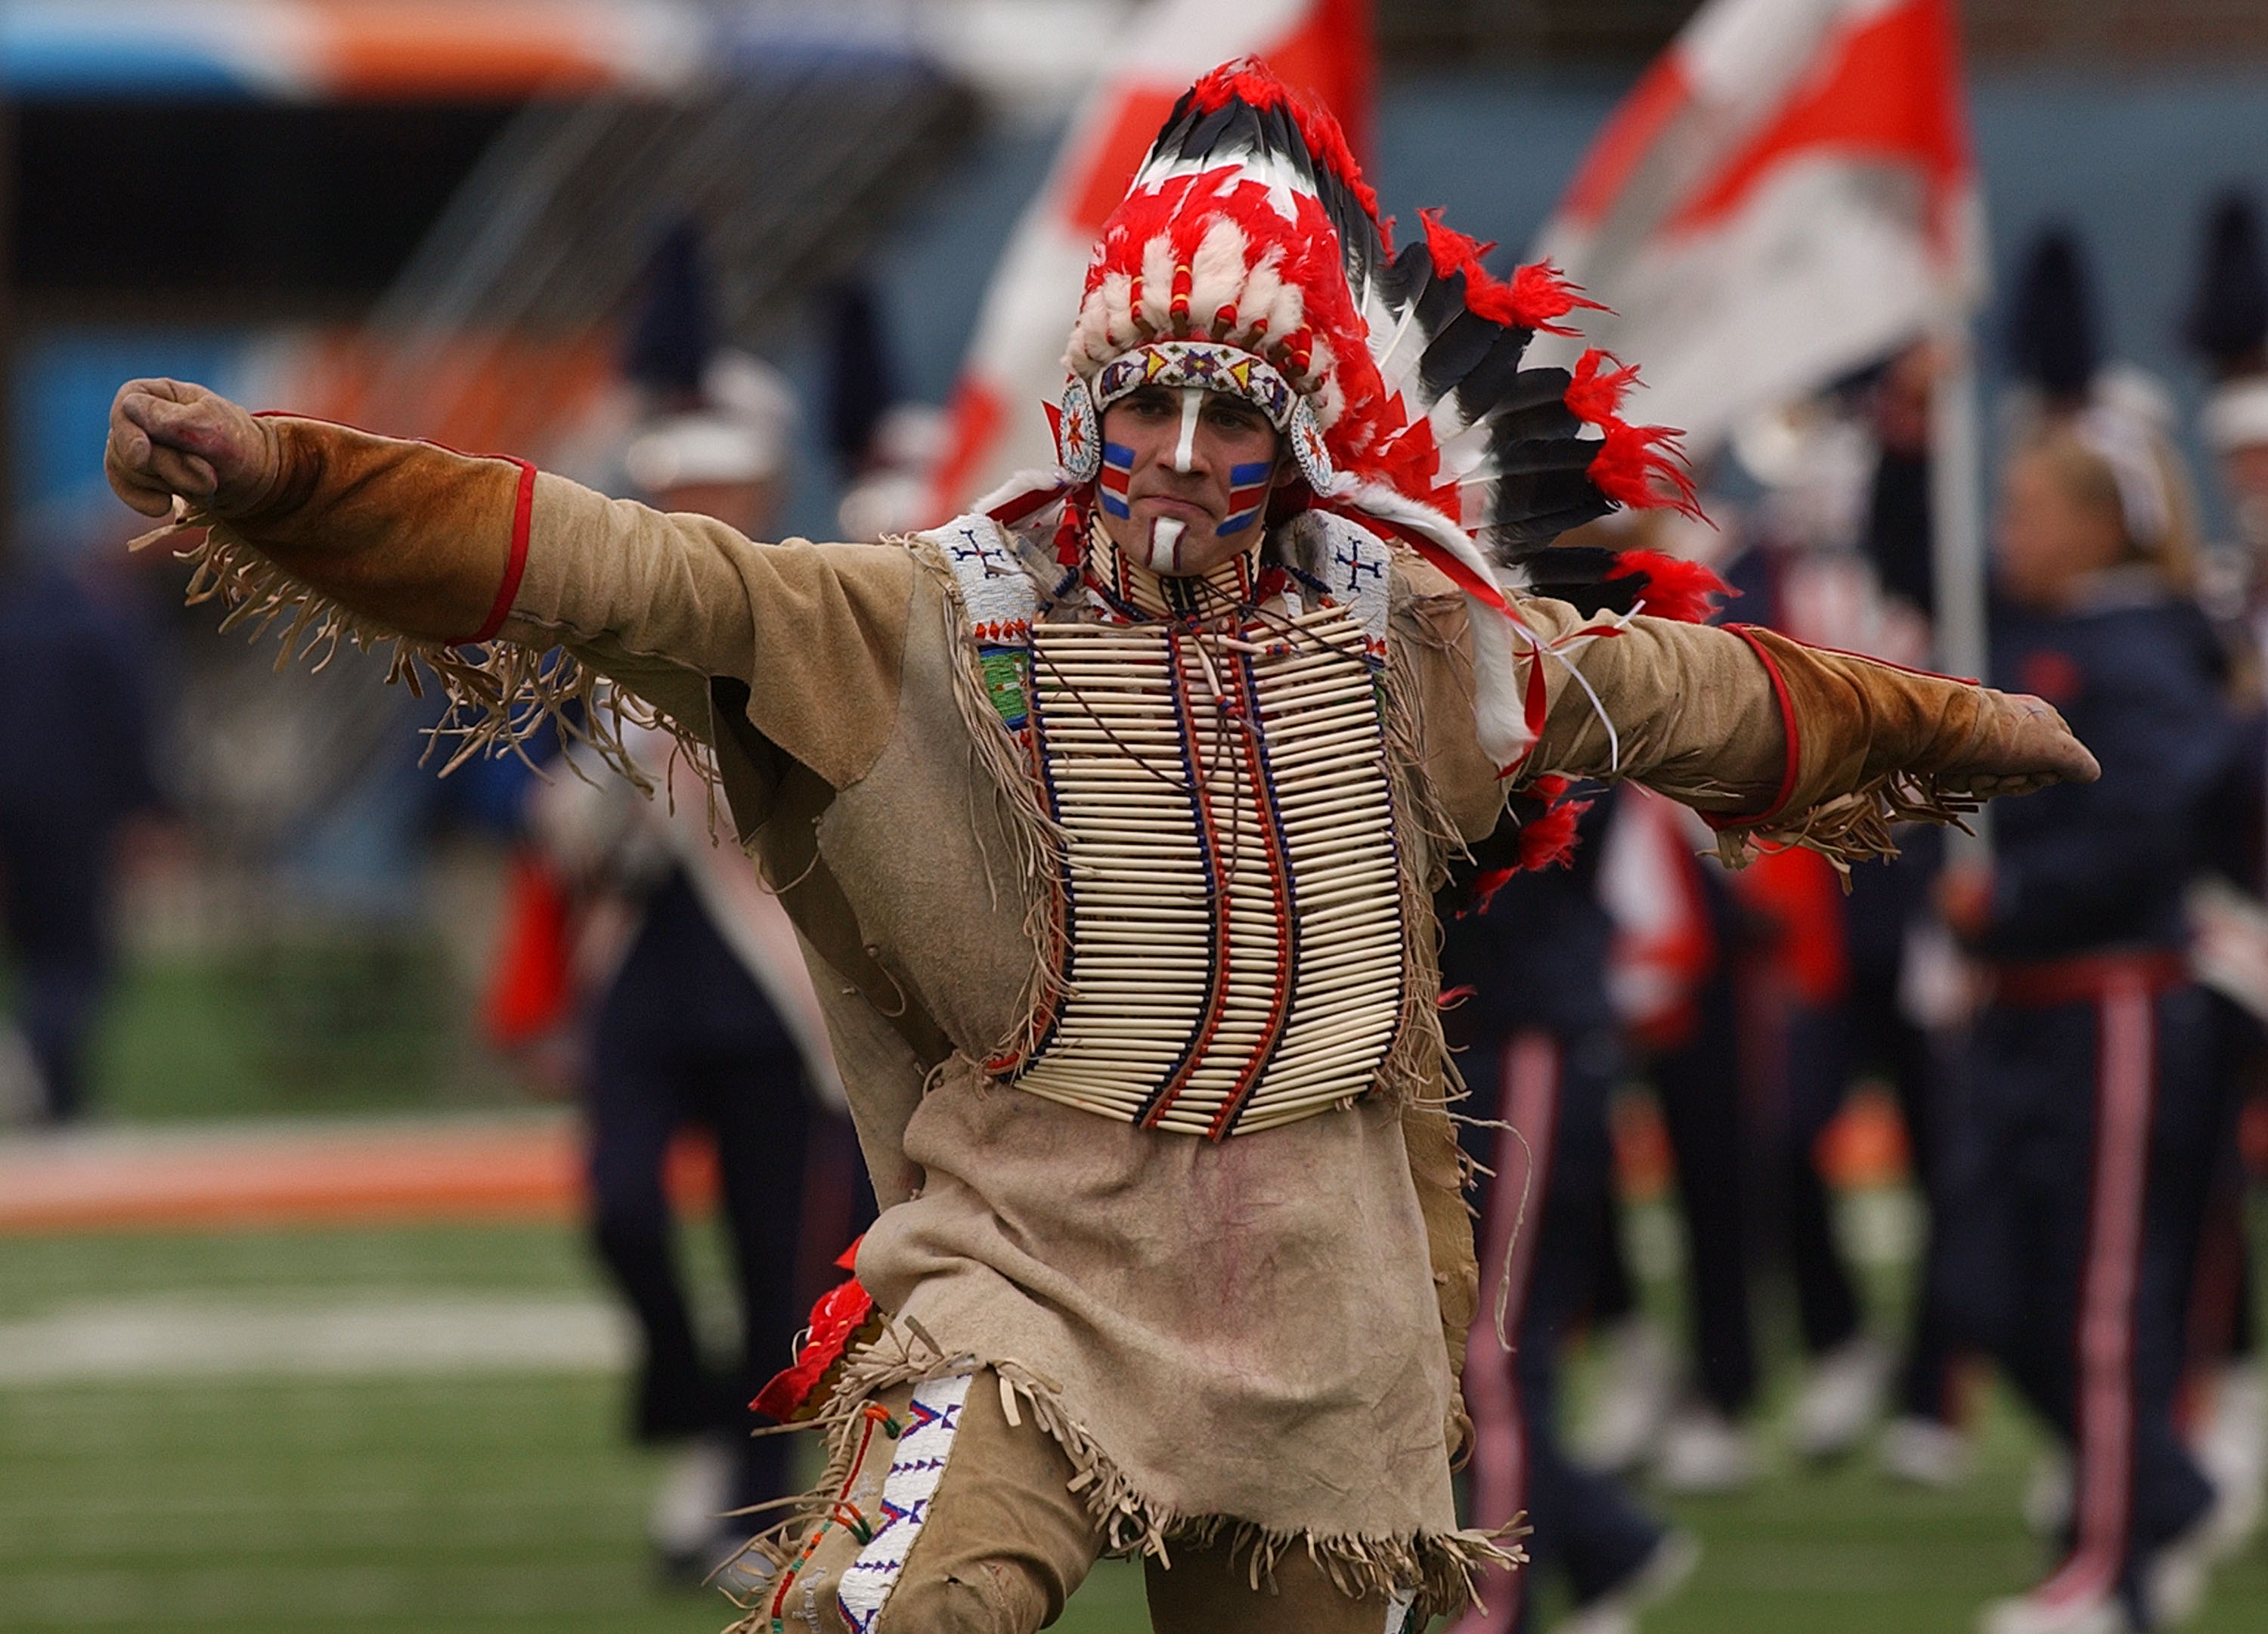 CHAMPAIGN, IL - OCTOBER 16: Controversial symbol 'Chief Illiniwek' of the University of Illinois performs during the half-time show of a game between Illinois and Michigan at Memorial Stadium October 16, 2004 in Champaign, Illinois. Michigan defeated Illi